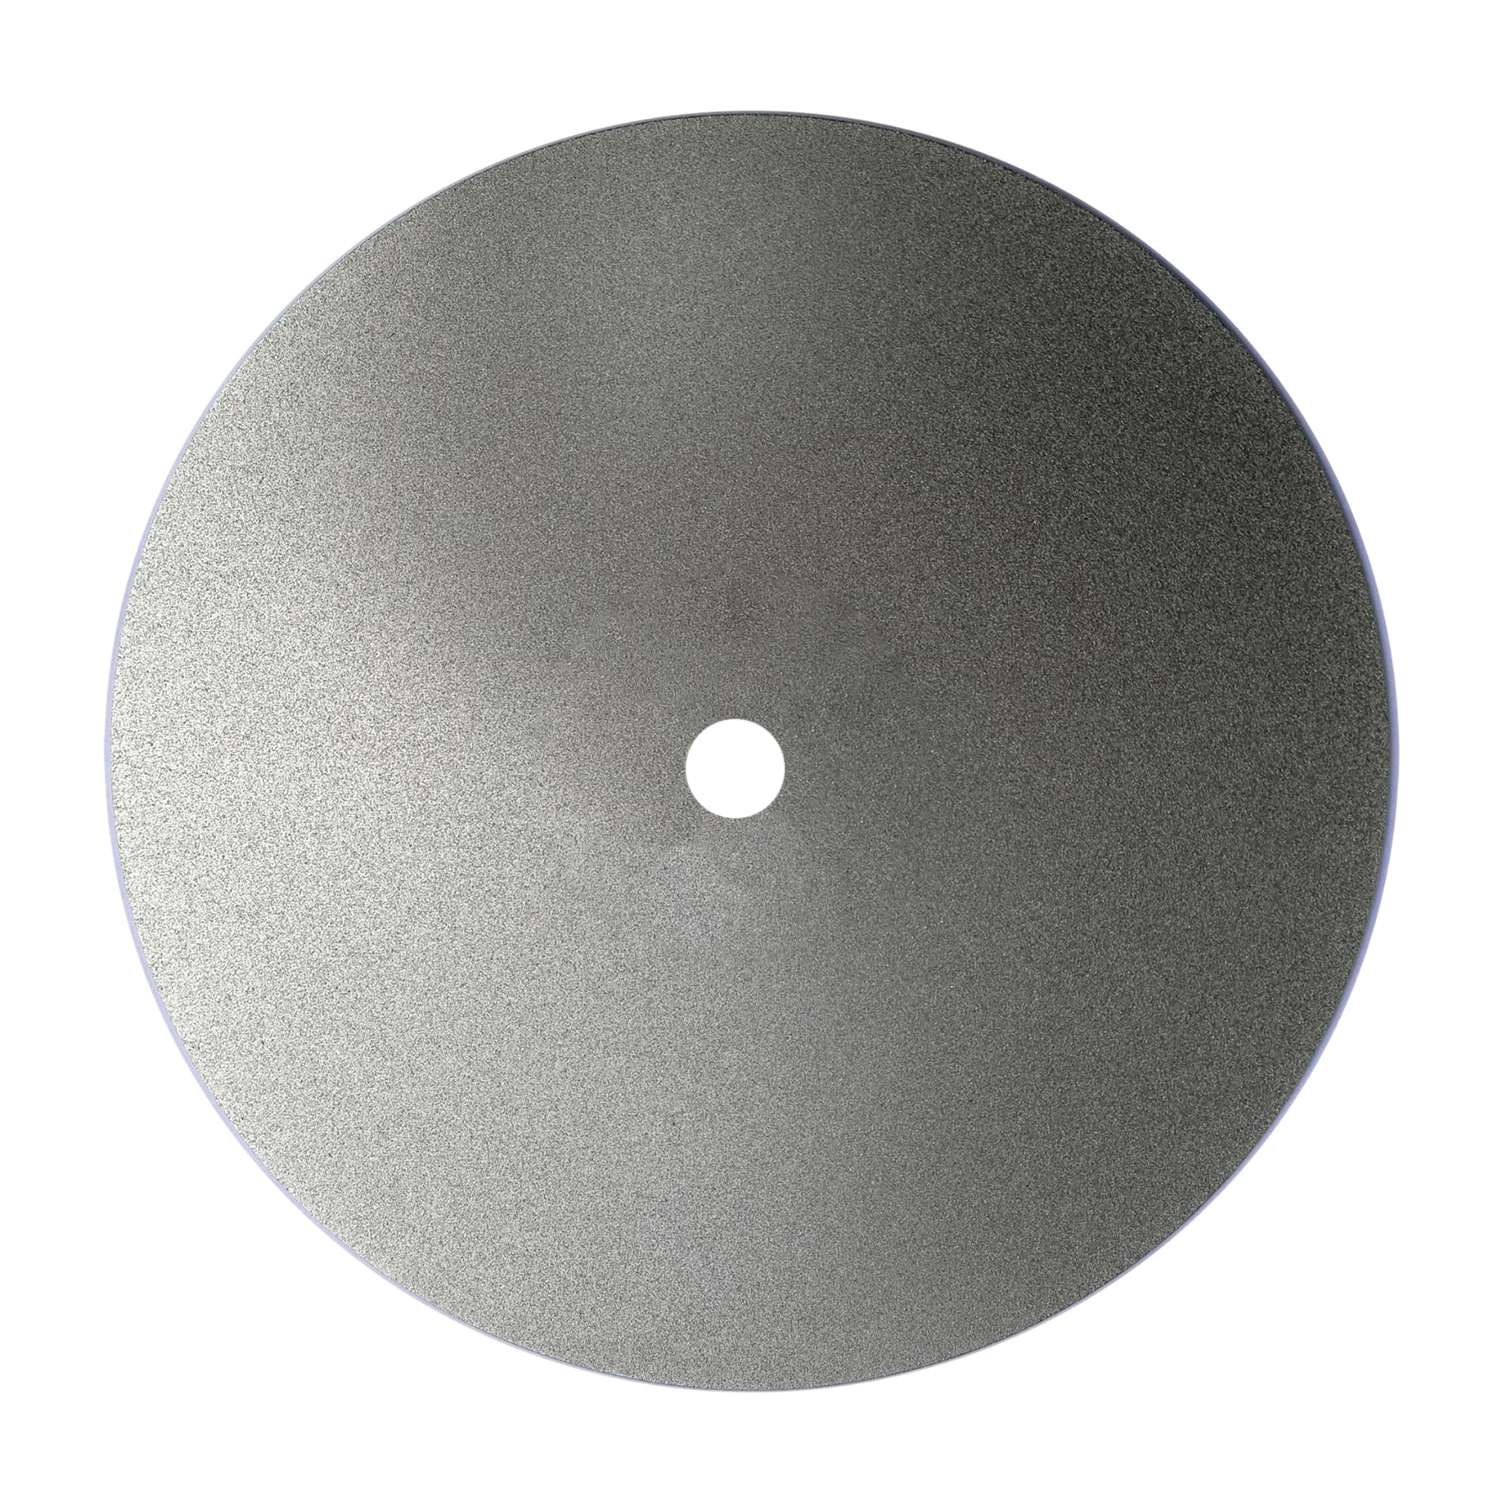 300mm 12-Inch Grit 100 Diamond Coated Flat Lap Disk Wheel Grinding Sanding Disc